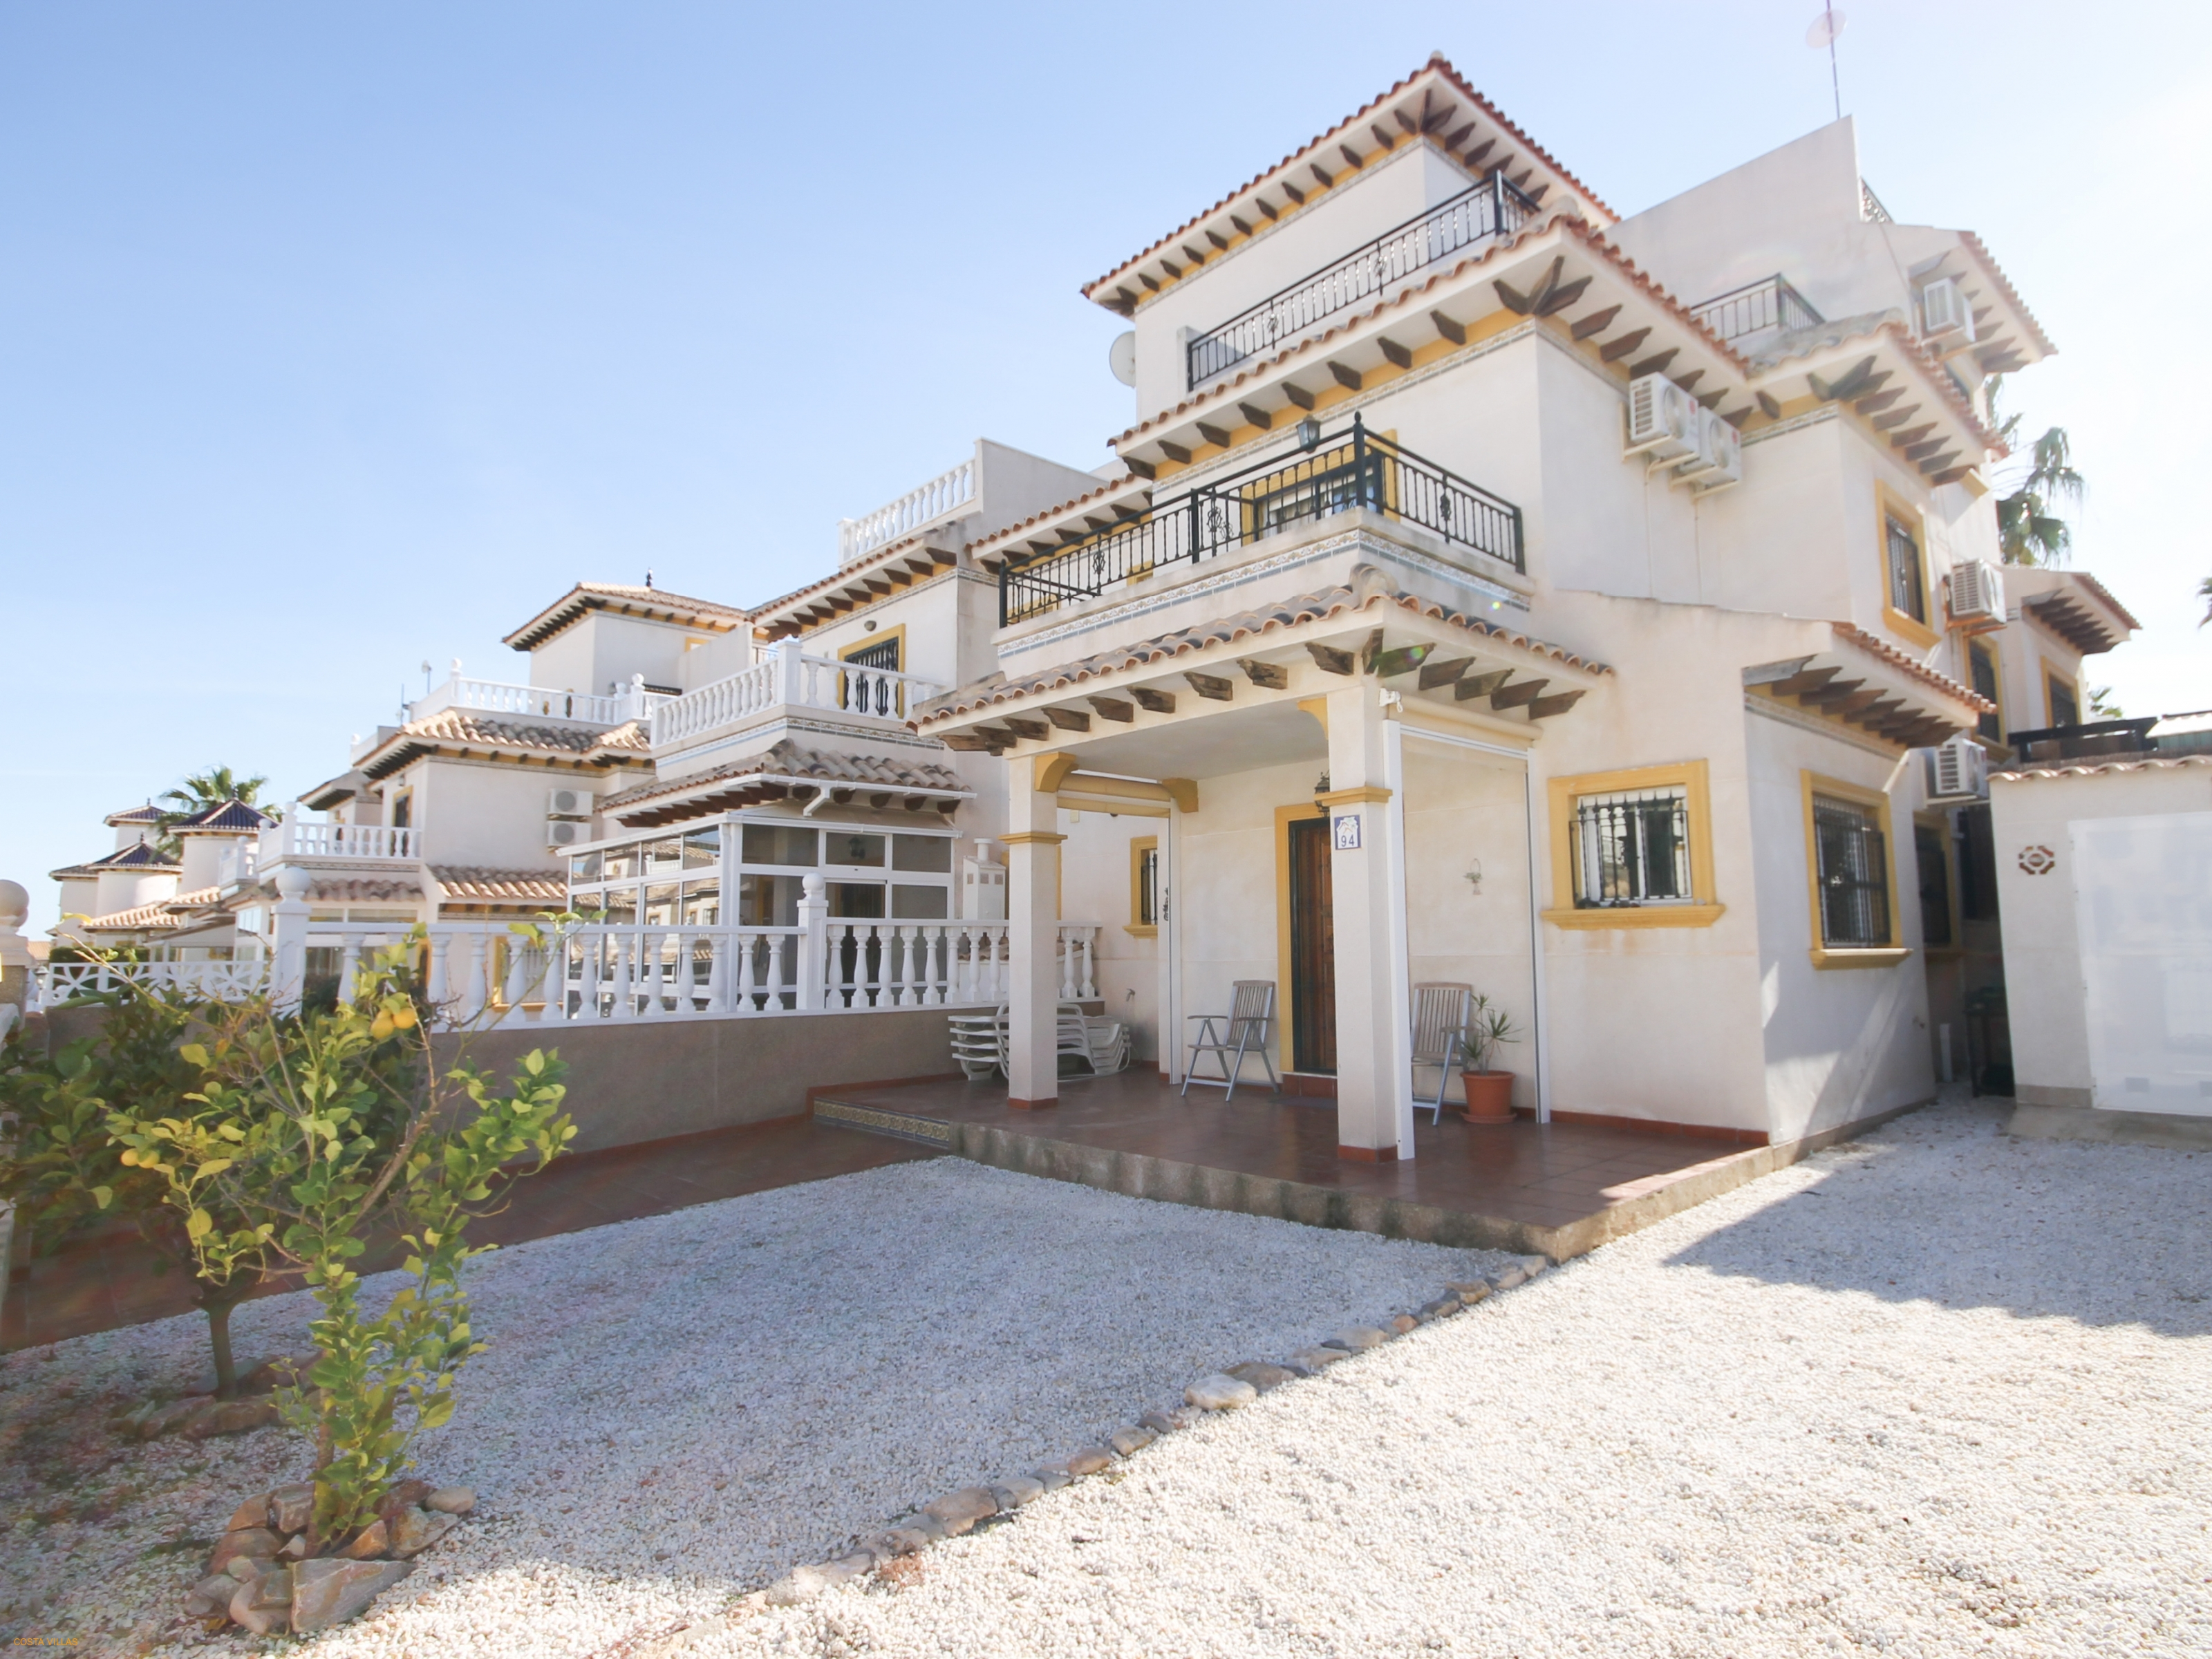 Immaculate 2 bed, 1/2 bath house with communal pool